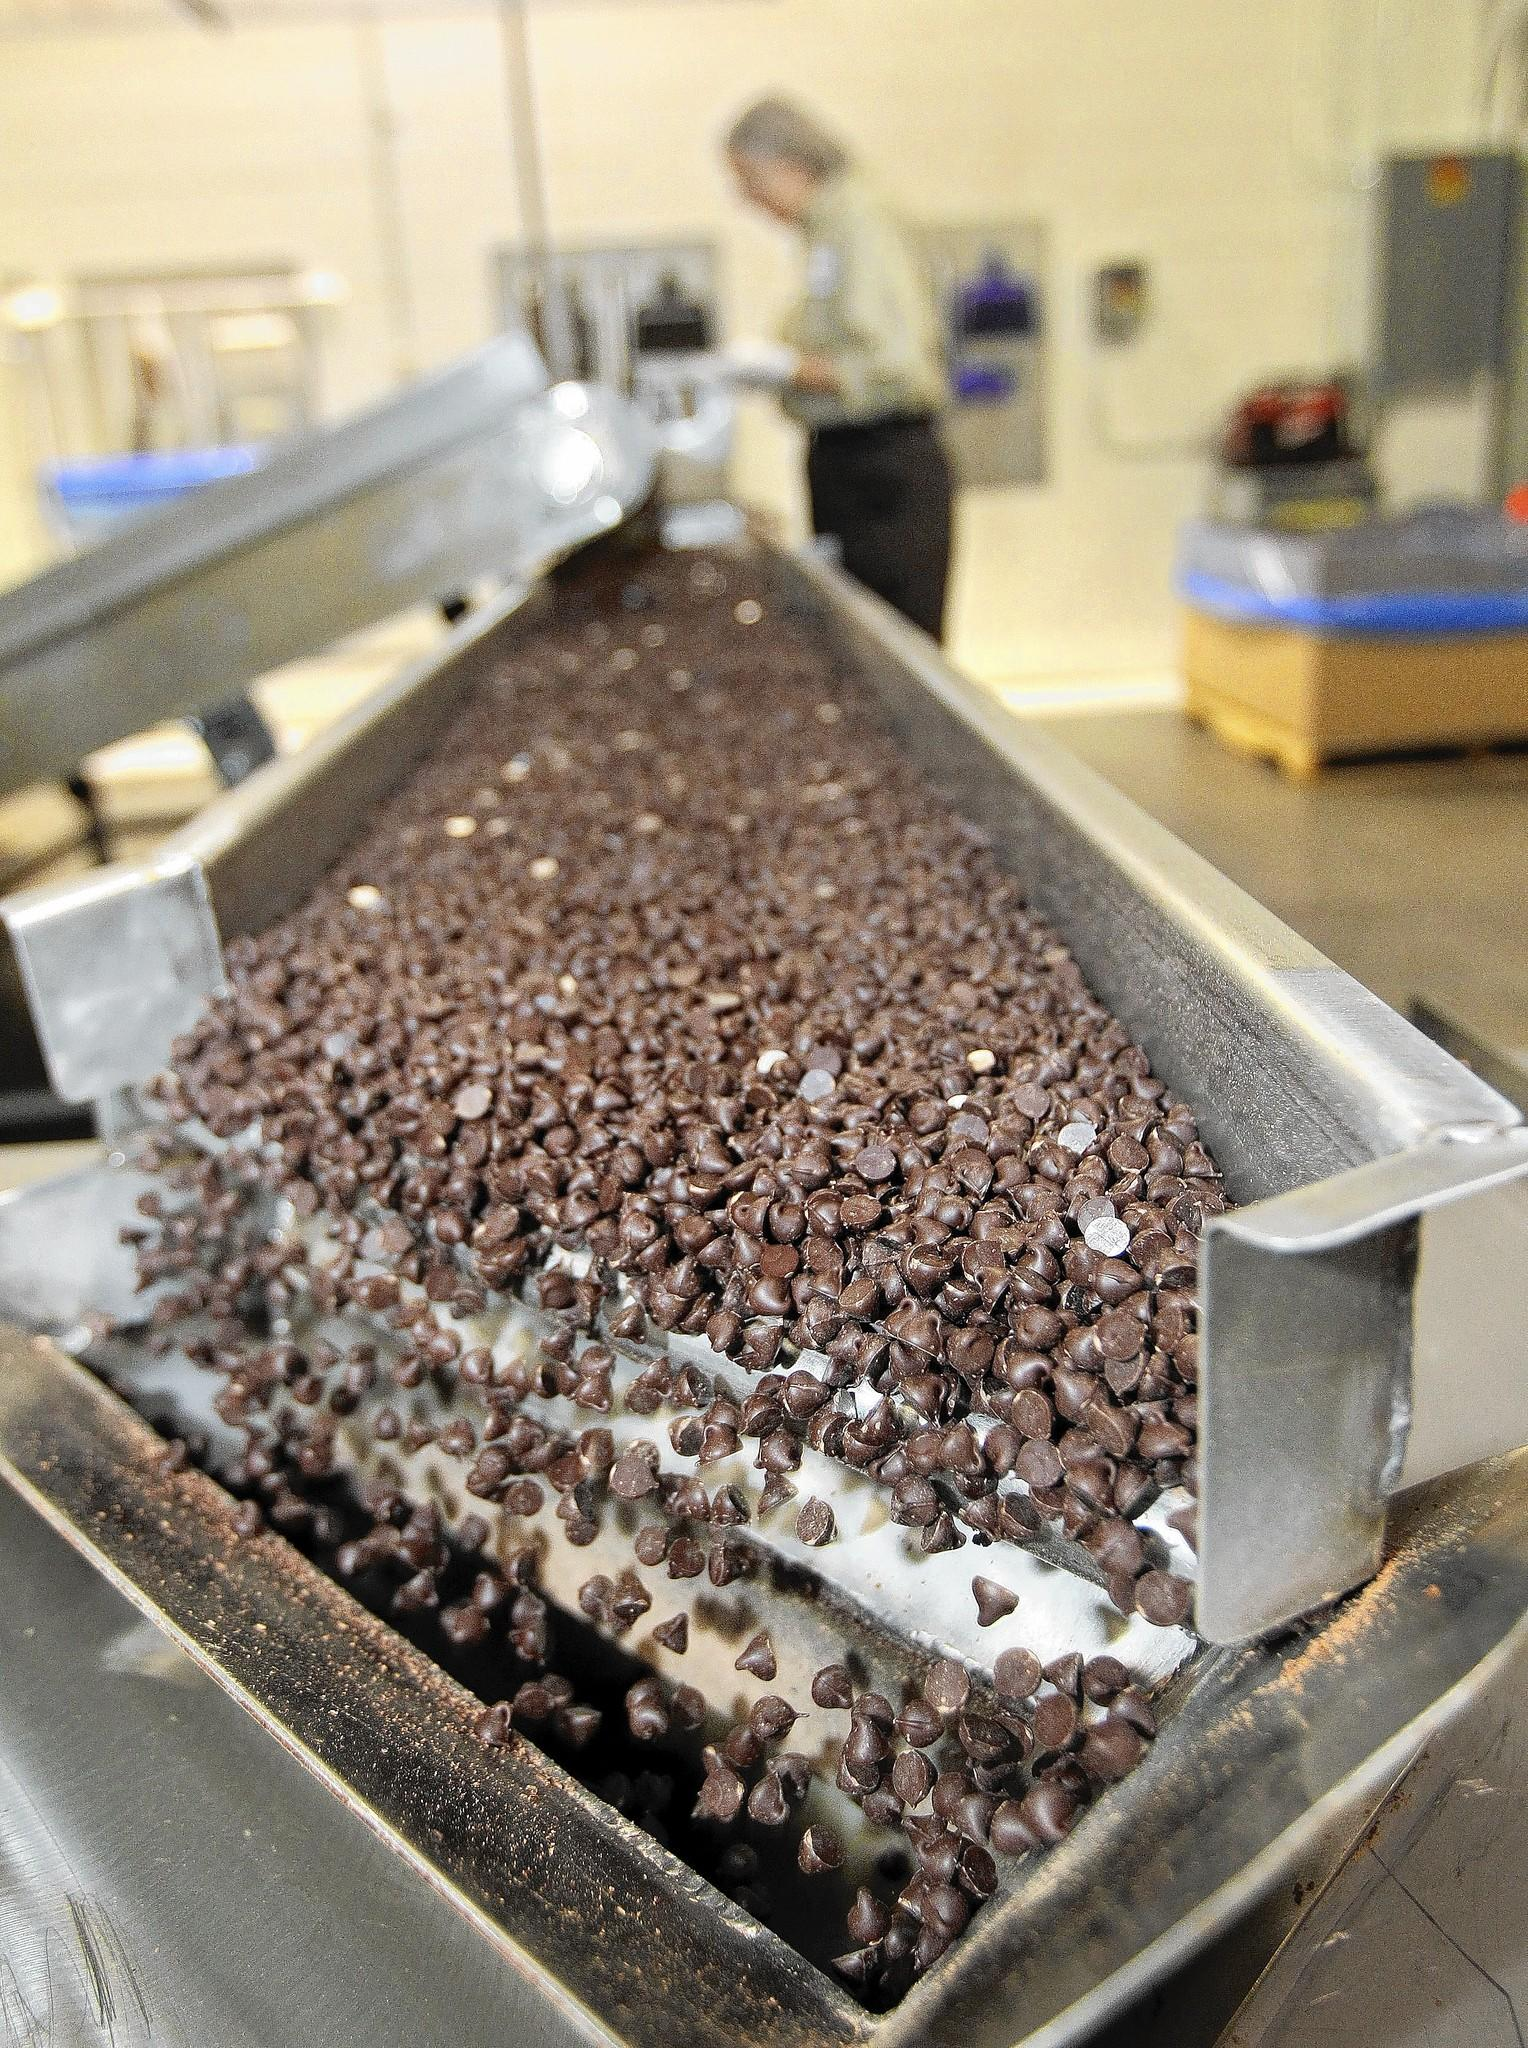 Chocolate chips fall off a conveyor belt and into a hopper at a Blommer Chocolate Co. plant in East Greenville, Pa. Chicago-based Blommer is North America's oldest and largest cocoa bean processor.